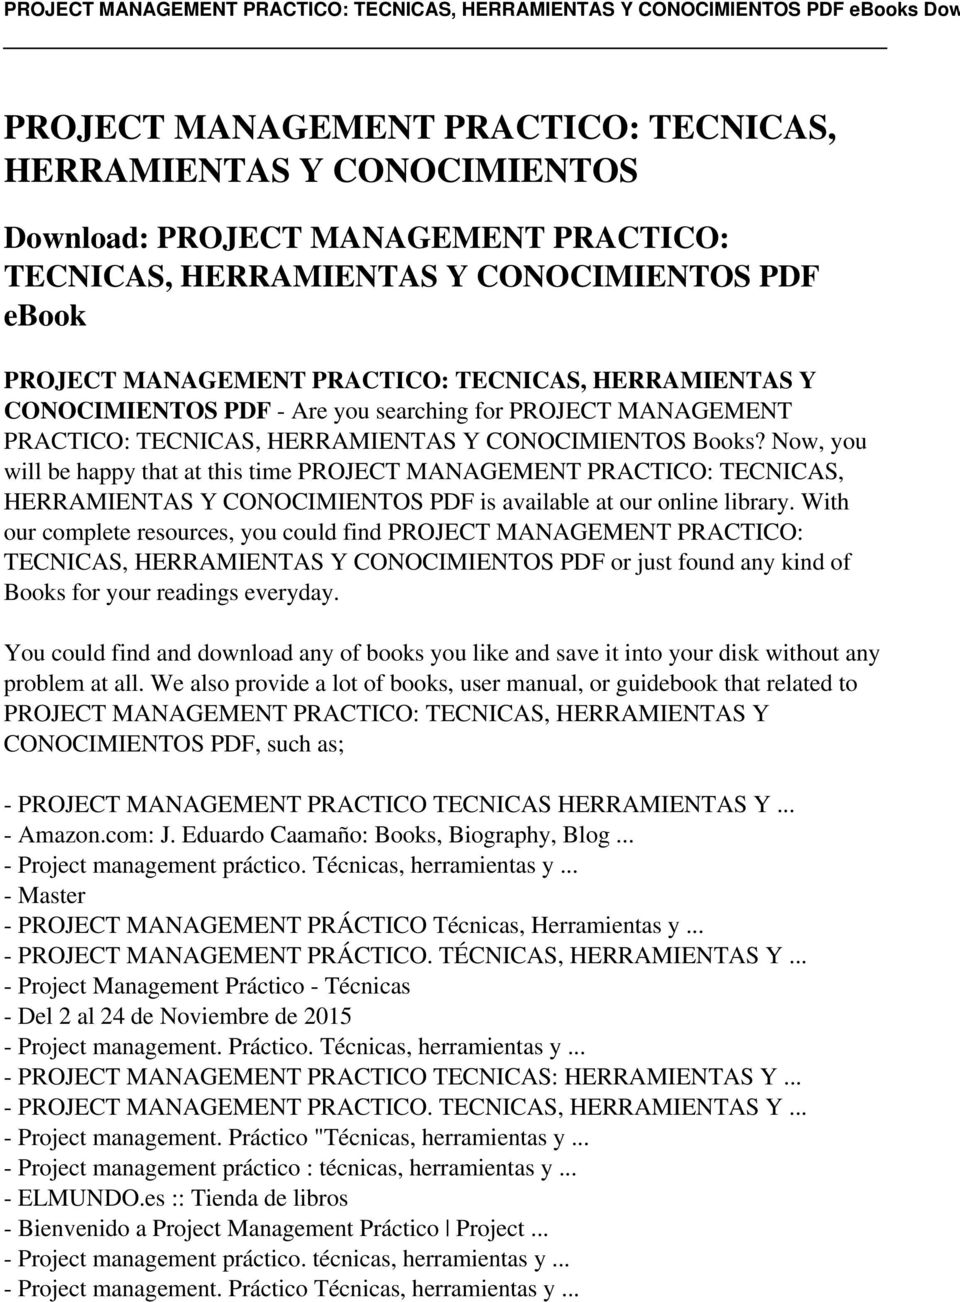 Now, you will be happy that at this time PROJECT MANAGEMENT PRACTICO: TECNICAS, HERRAMIENTAS Y CONOCIMIENTOS PDF is available at our online library.